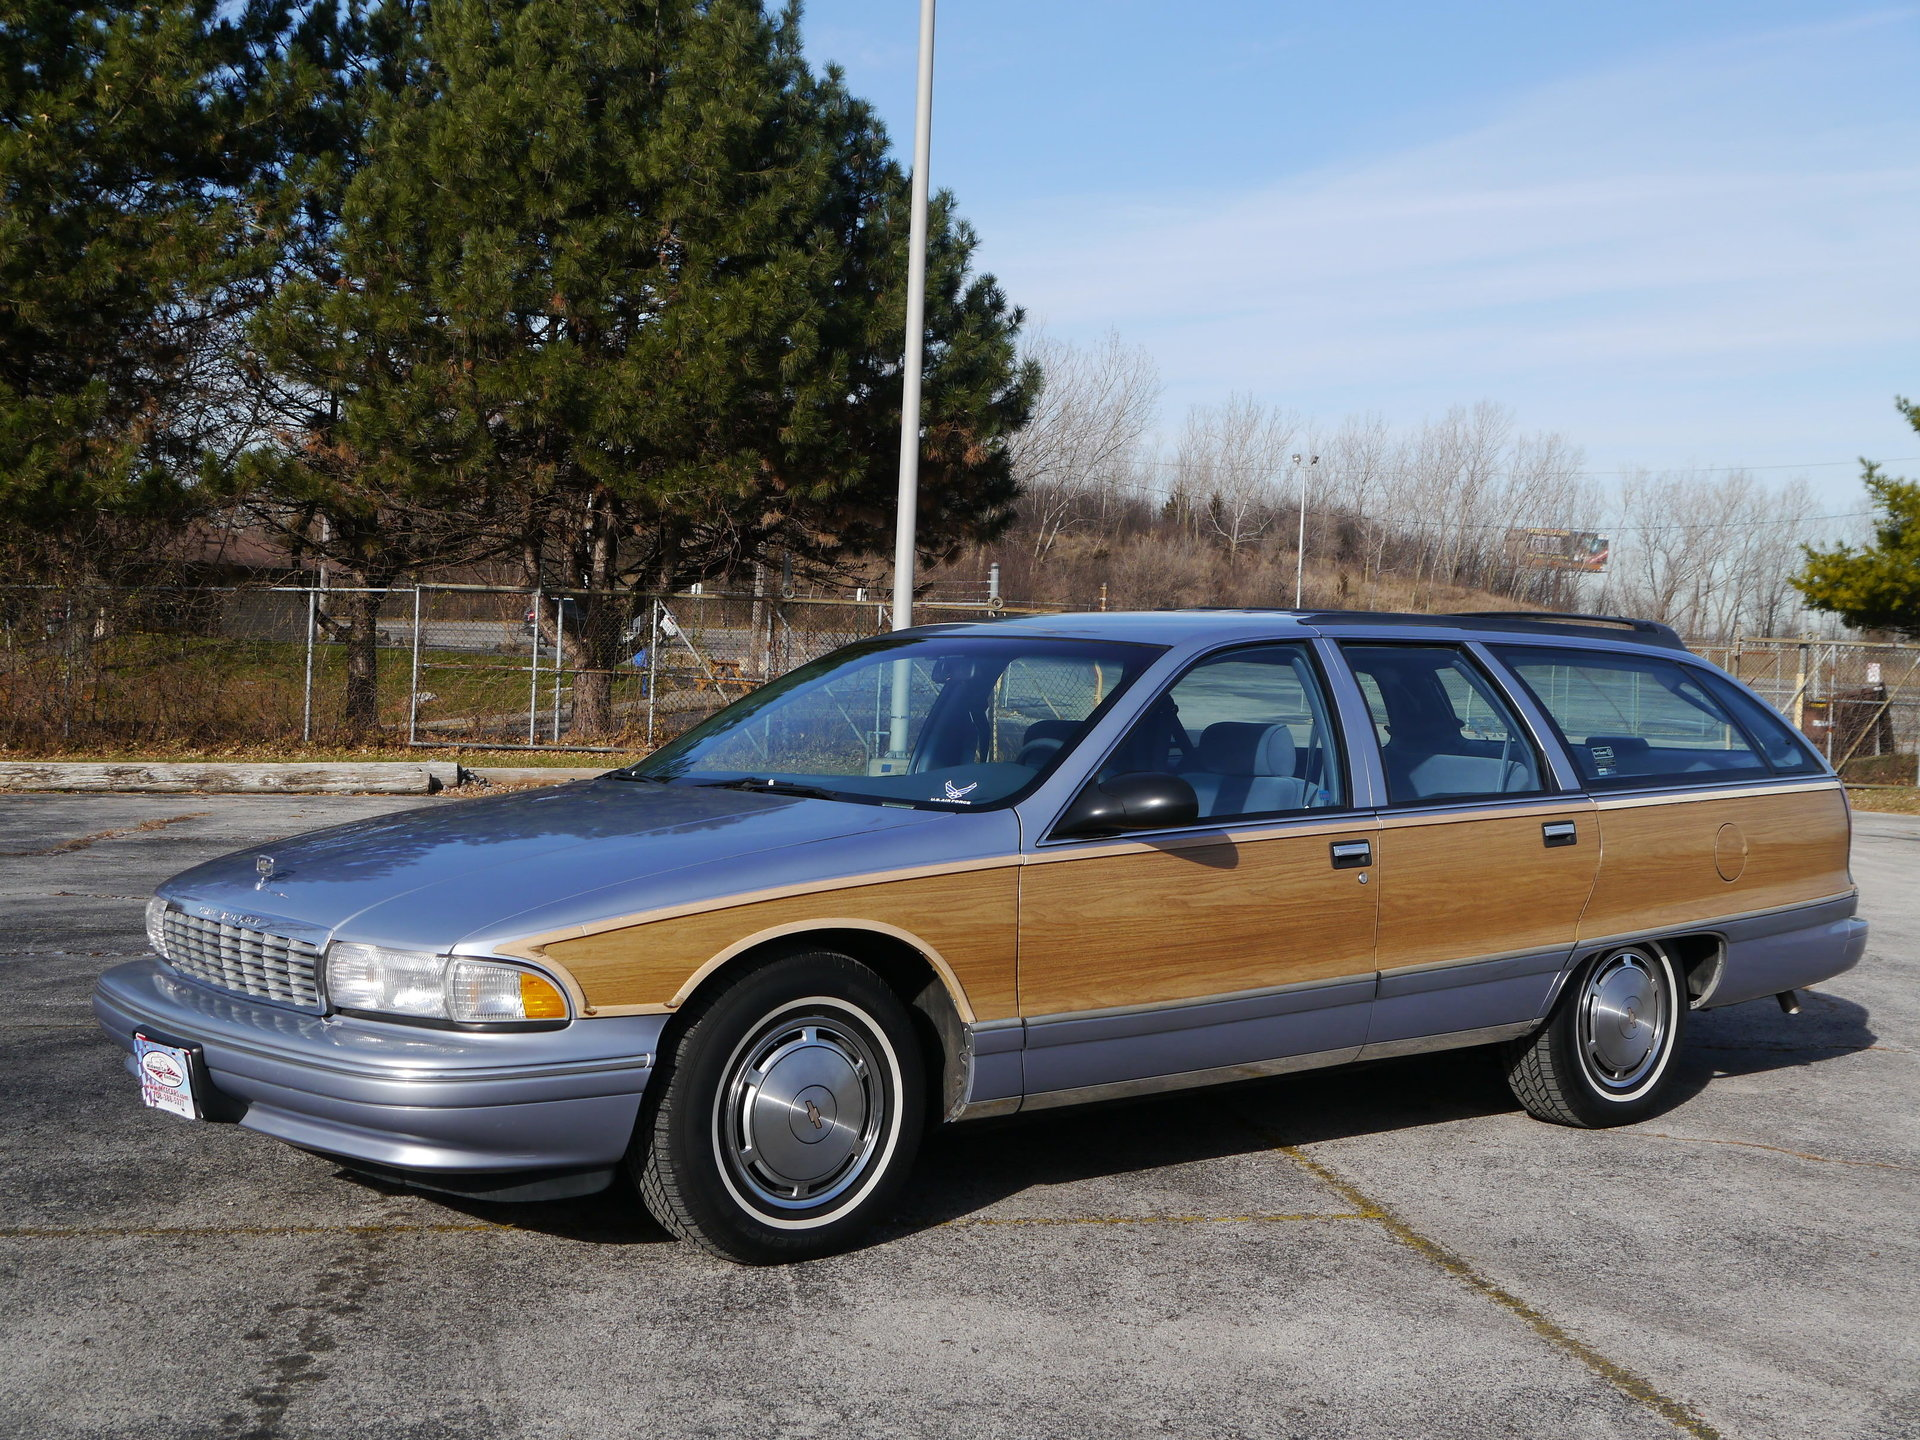 48361052d1817 hd 1995 chevrolet caprice classic station wagon